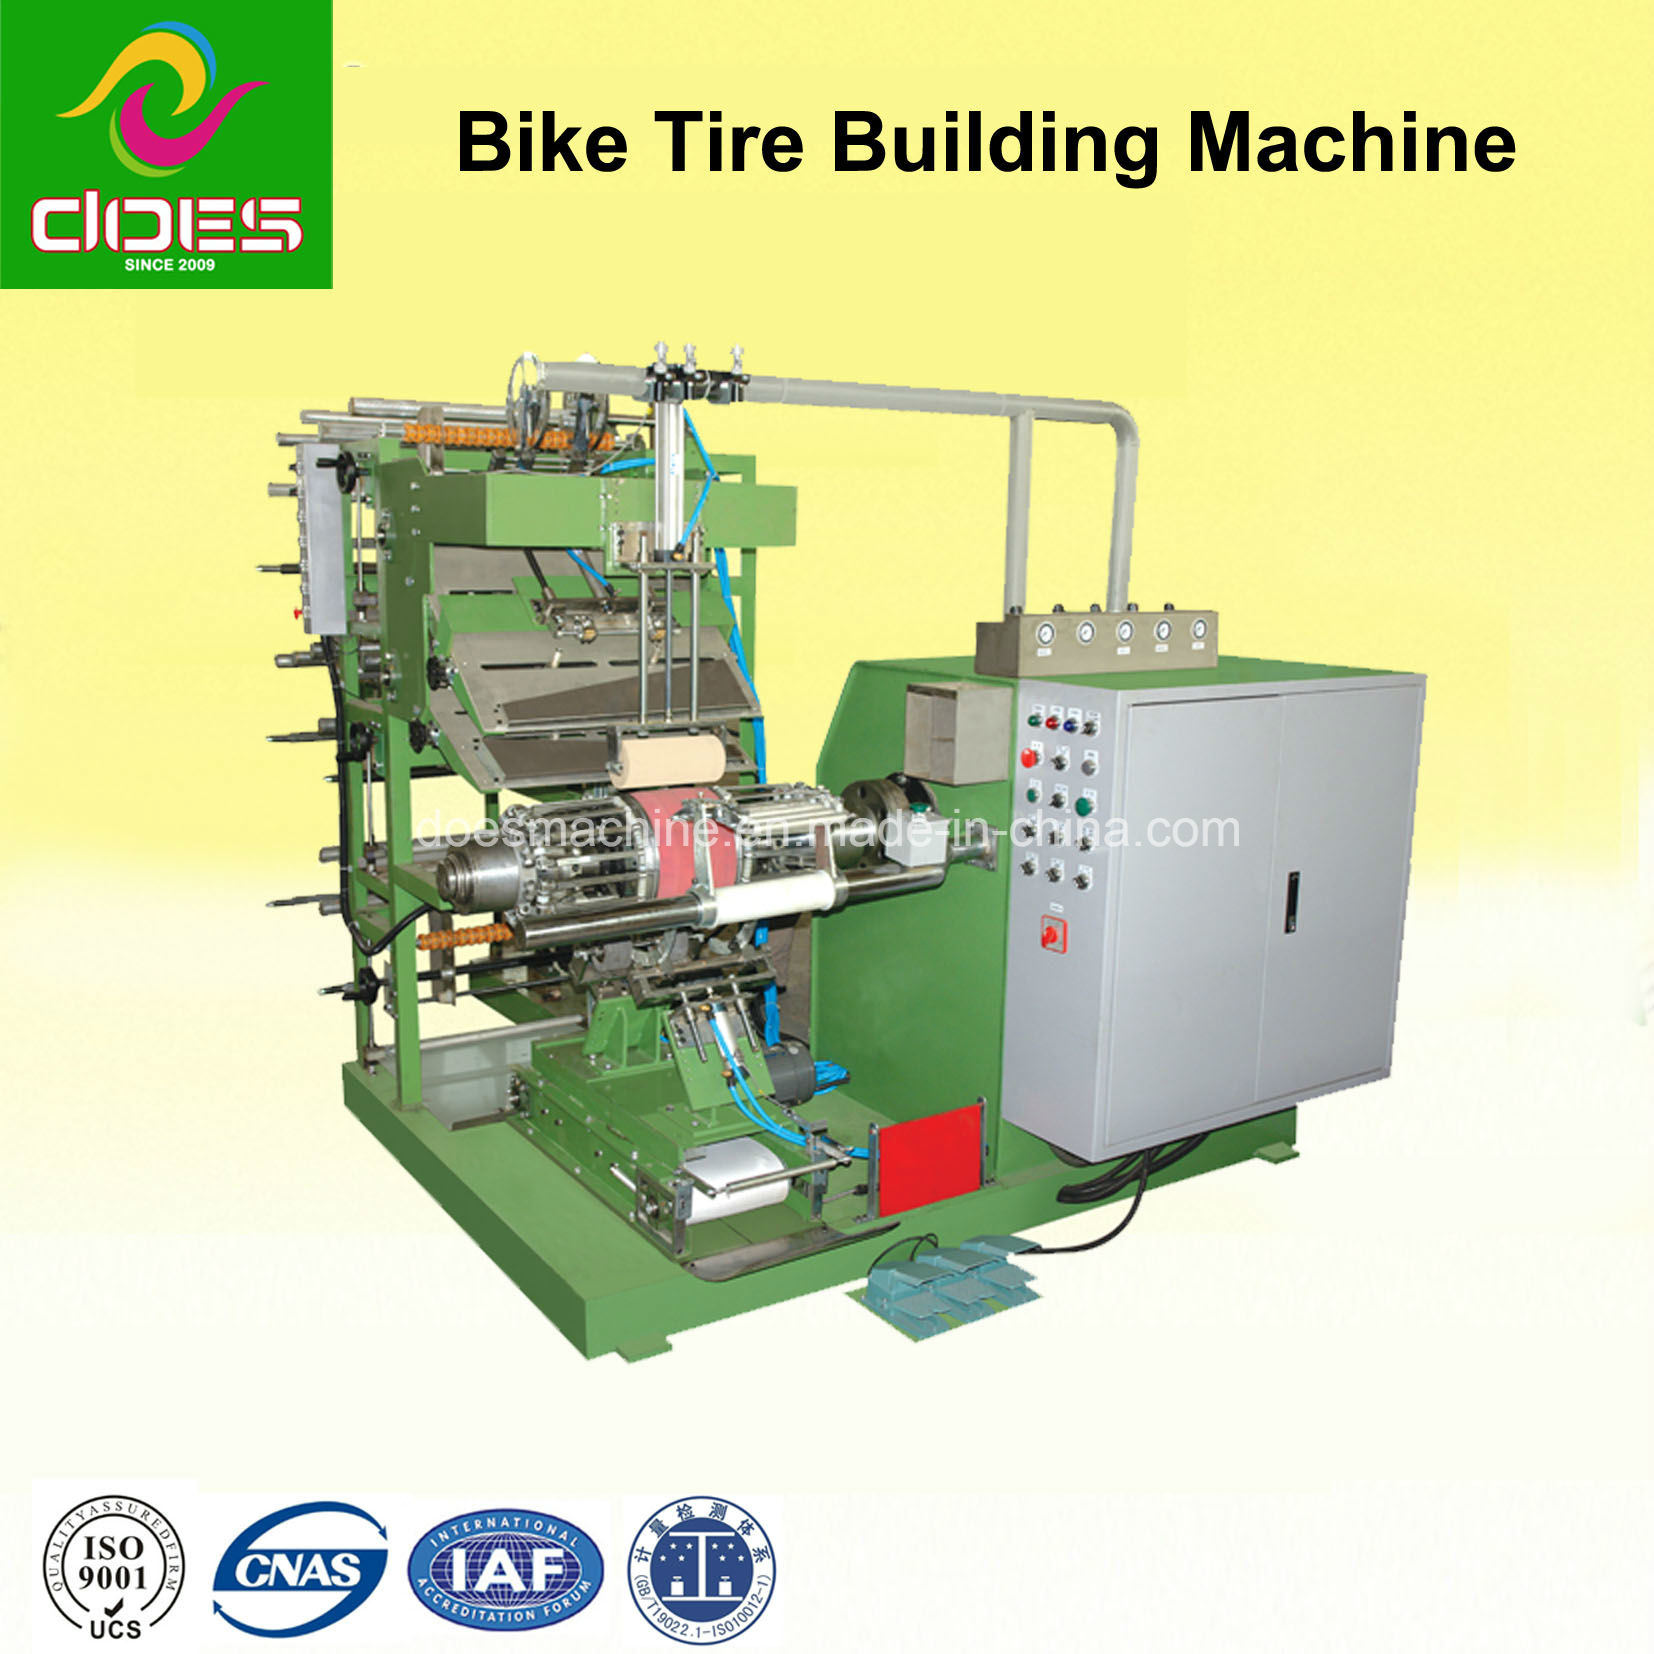 Rubber Tyre Machine for Making out Rubber with Bike /Electric Vehicle